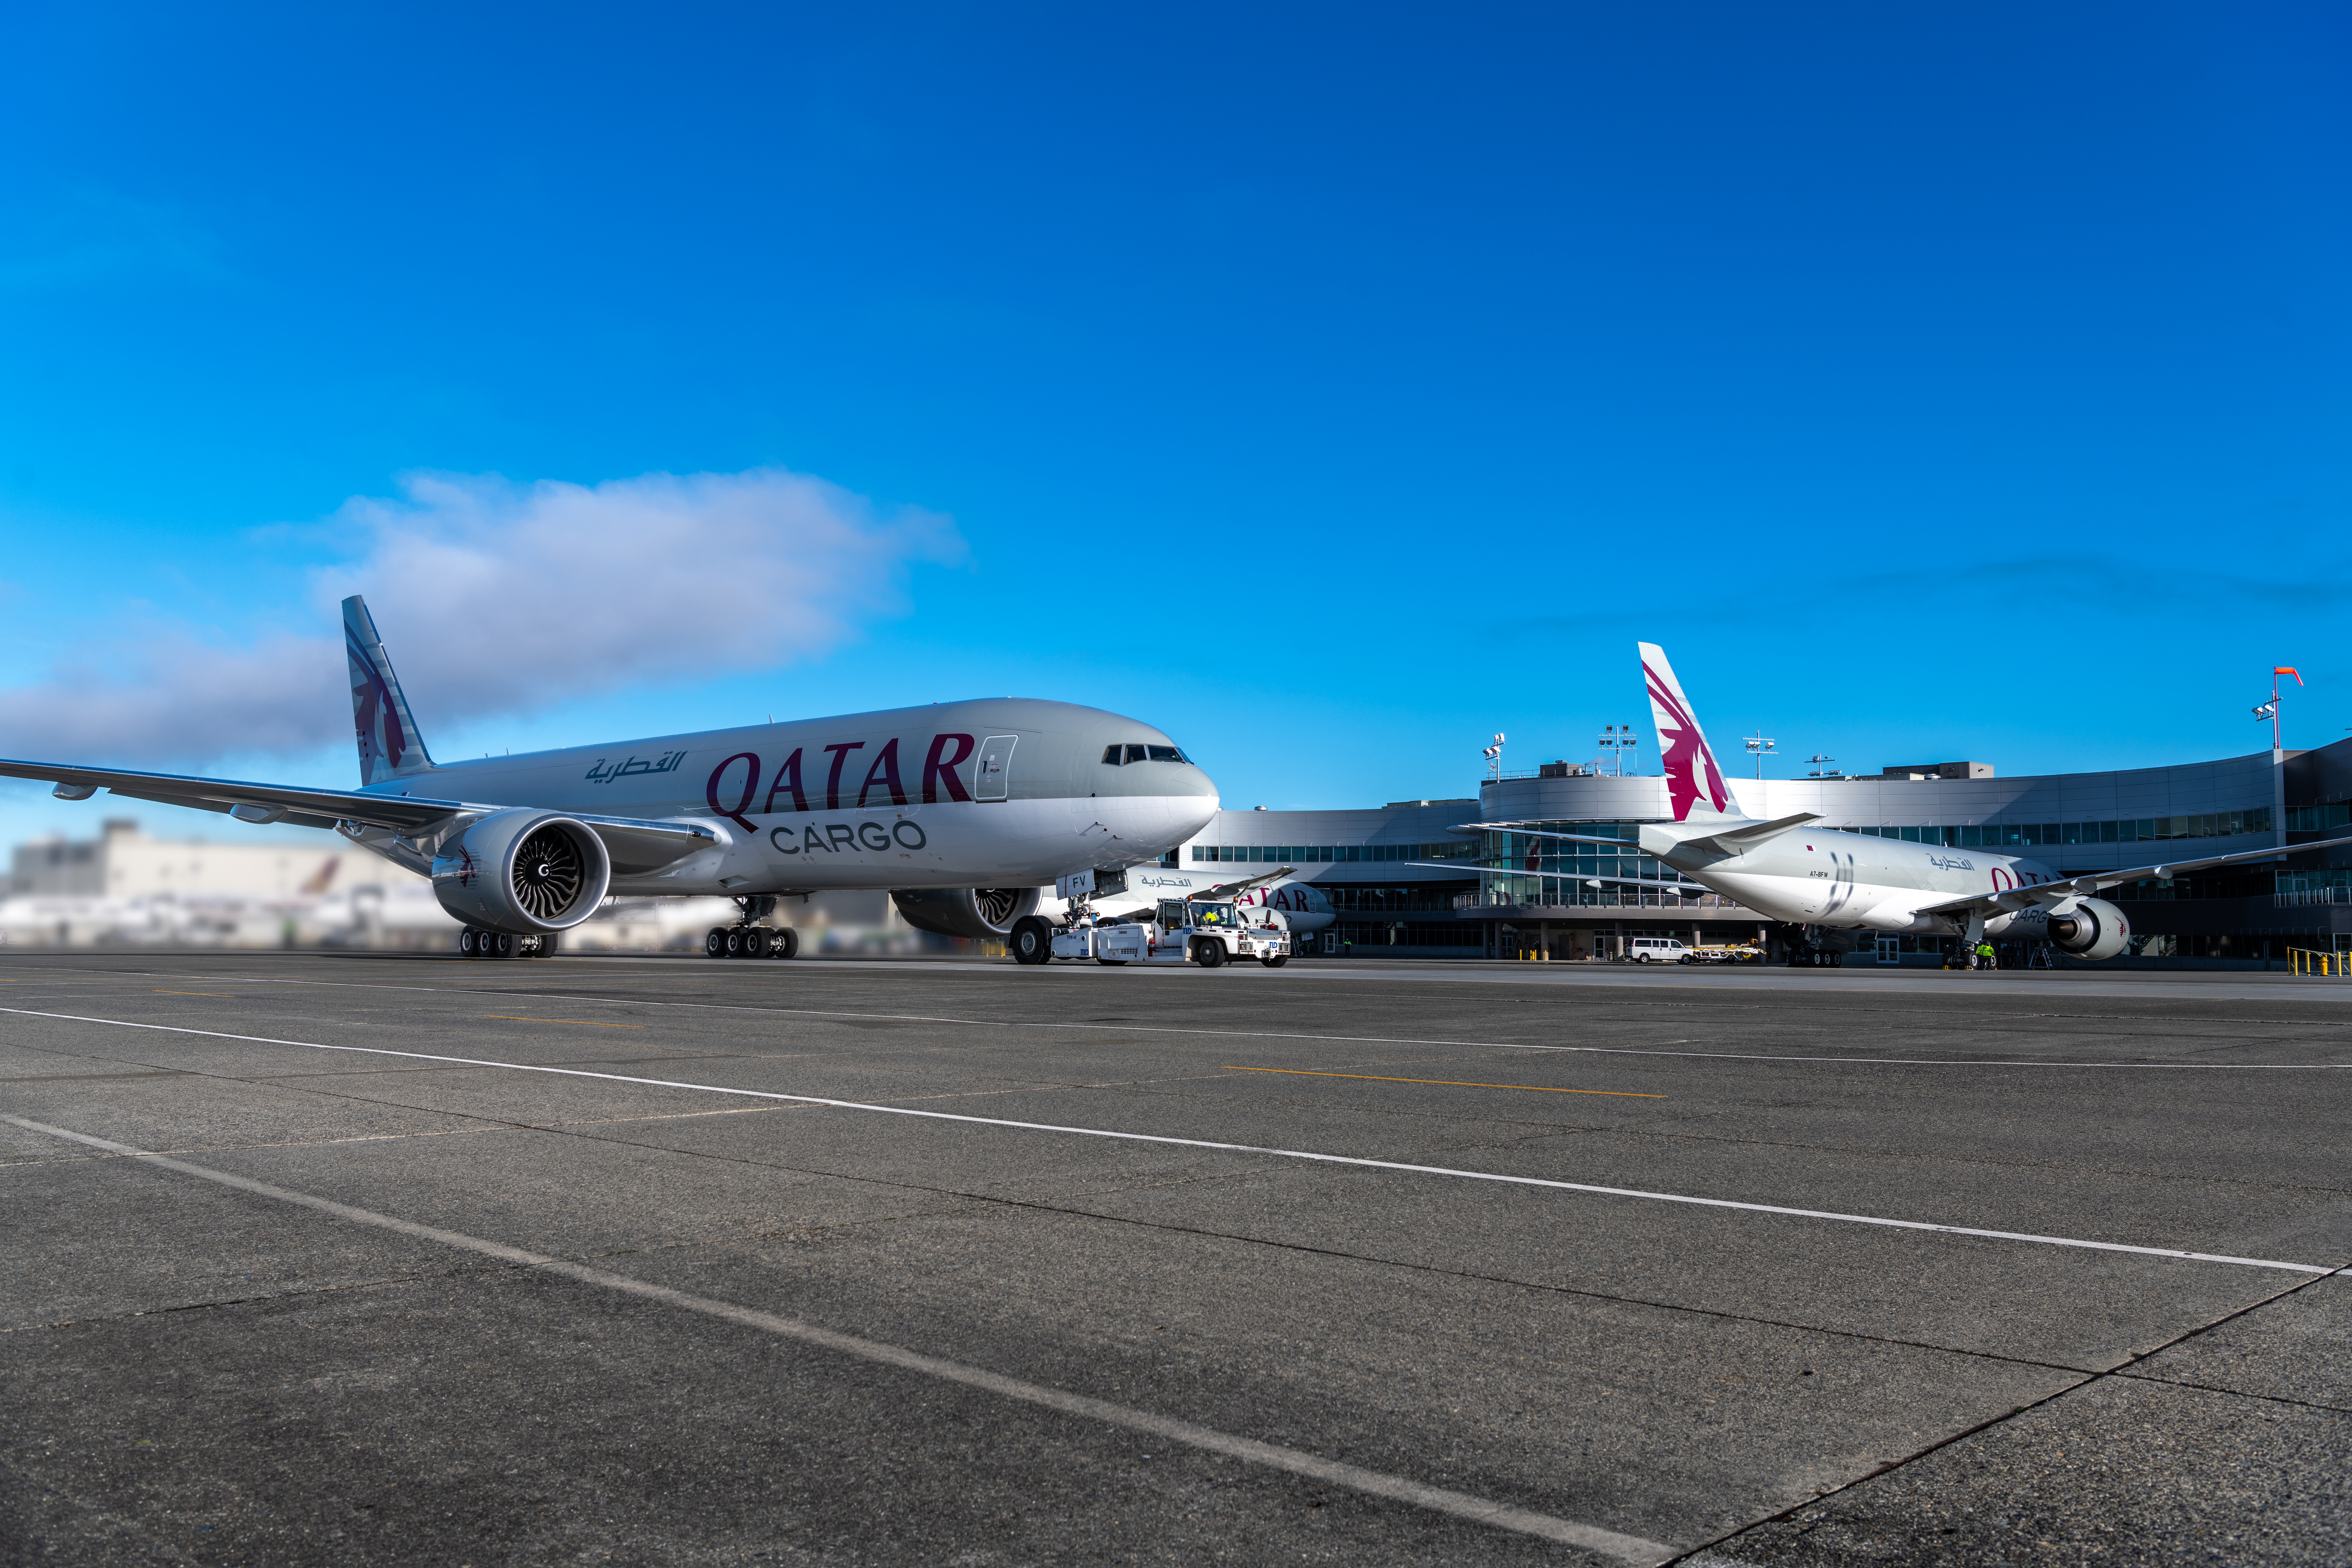 Boeing Delivers Trio of 777 Freighters to Qatar Airways Cargo